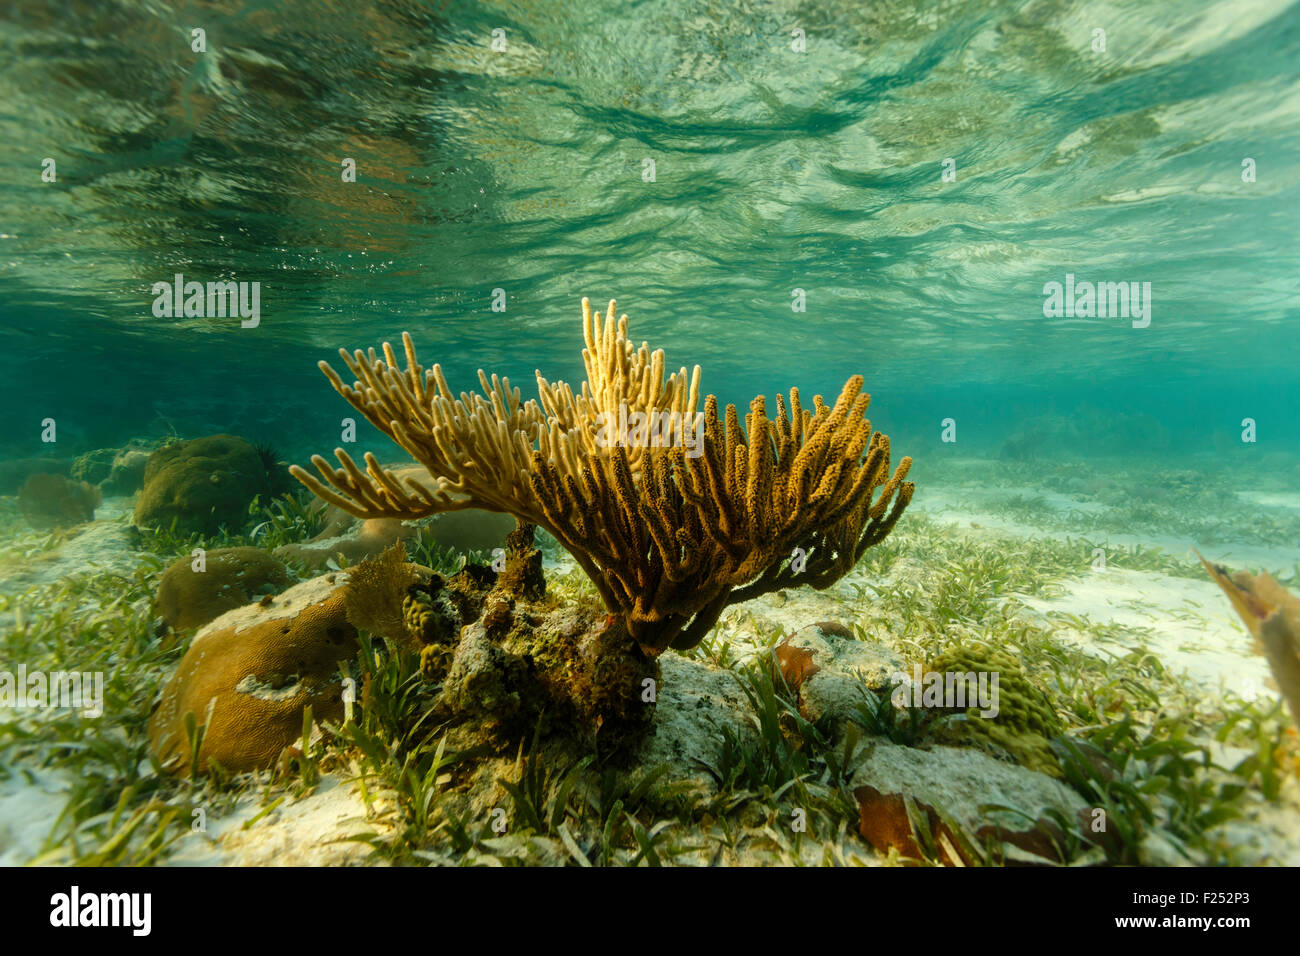 Coral and reflections of water surface - Stock Image